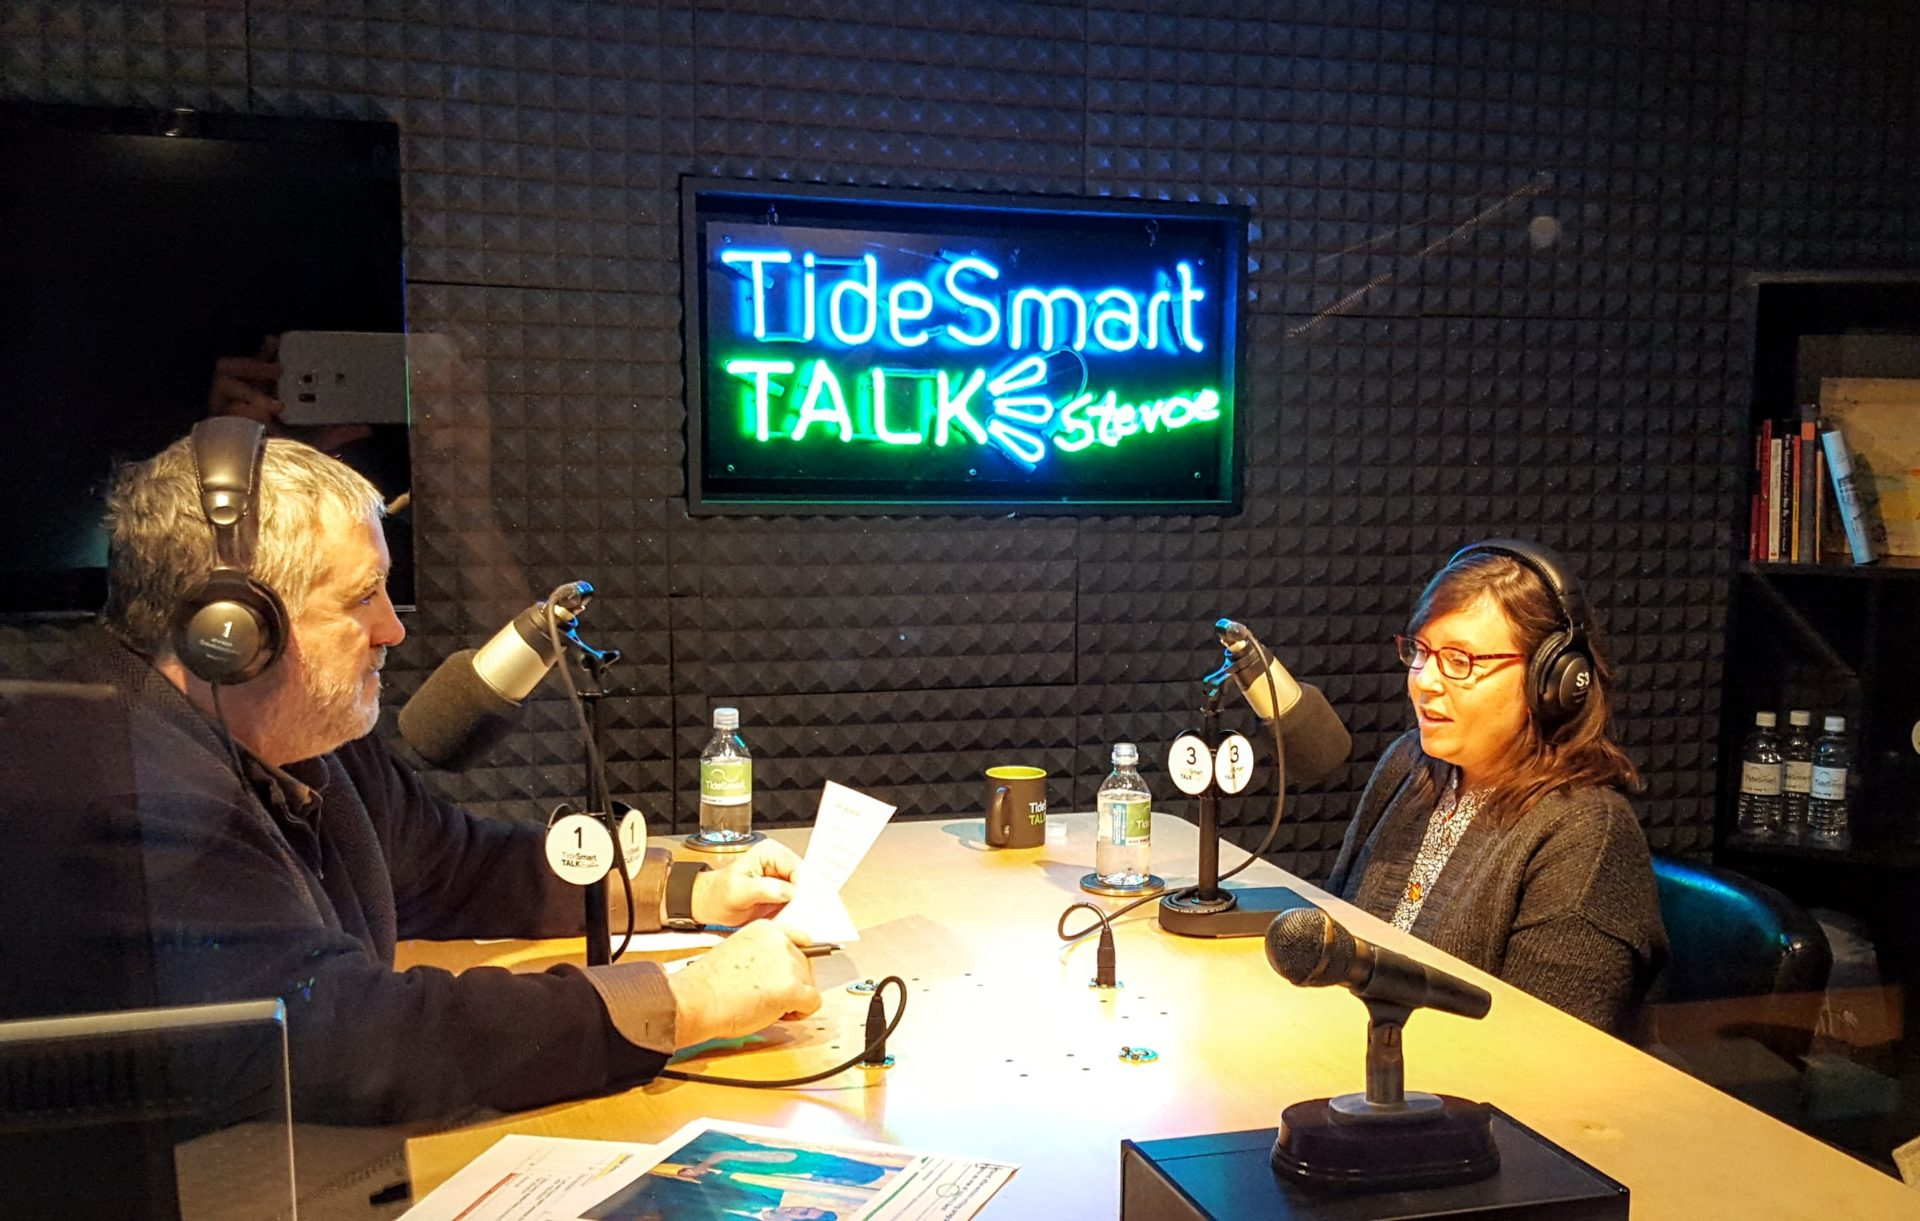 Host of TideSmart Talk with Stevoe, Steve Woods, welcomed the Executive Director of The Telling Room, Heather Davis (at right).